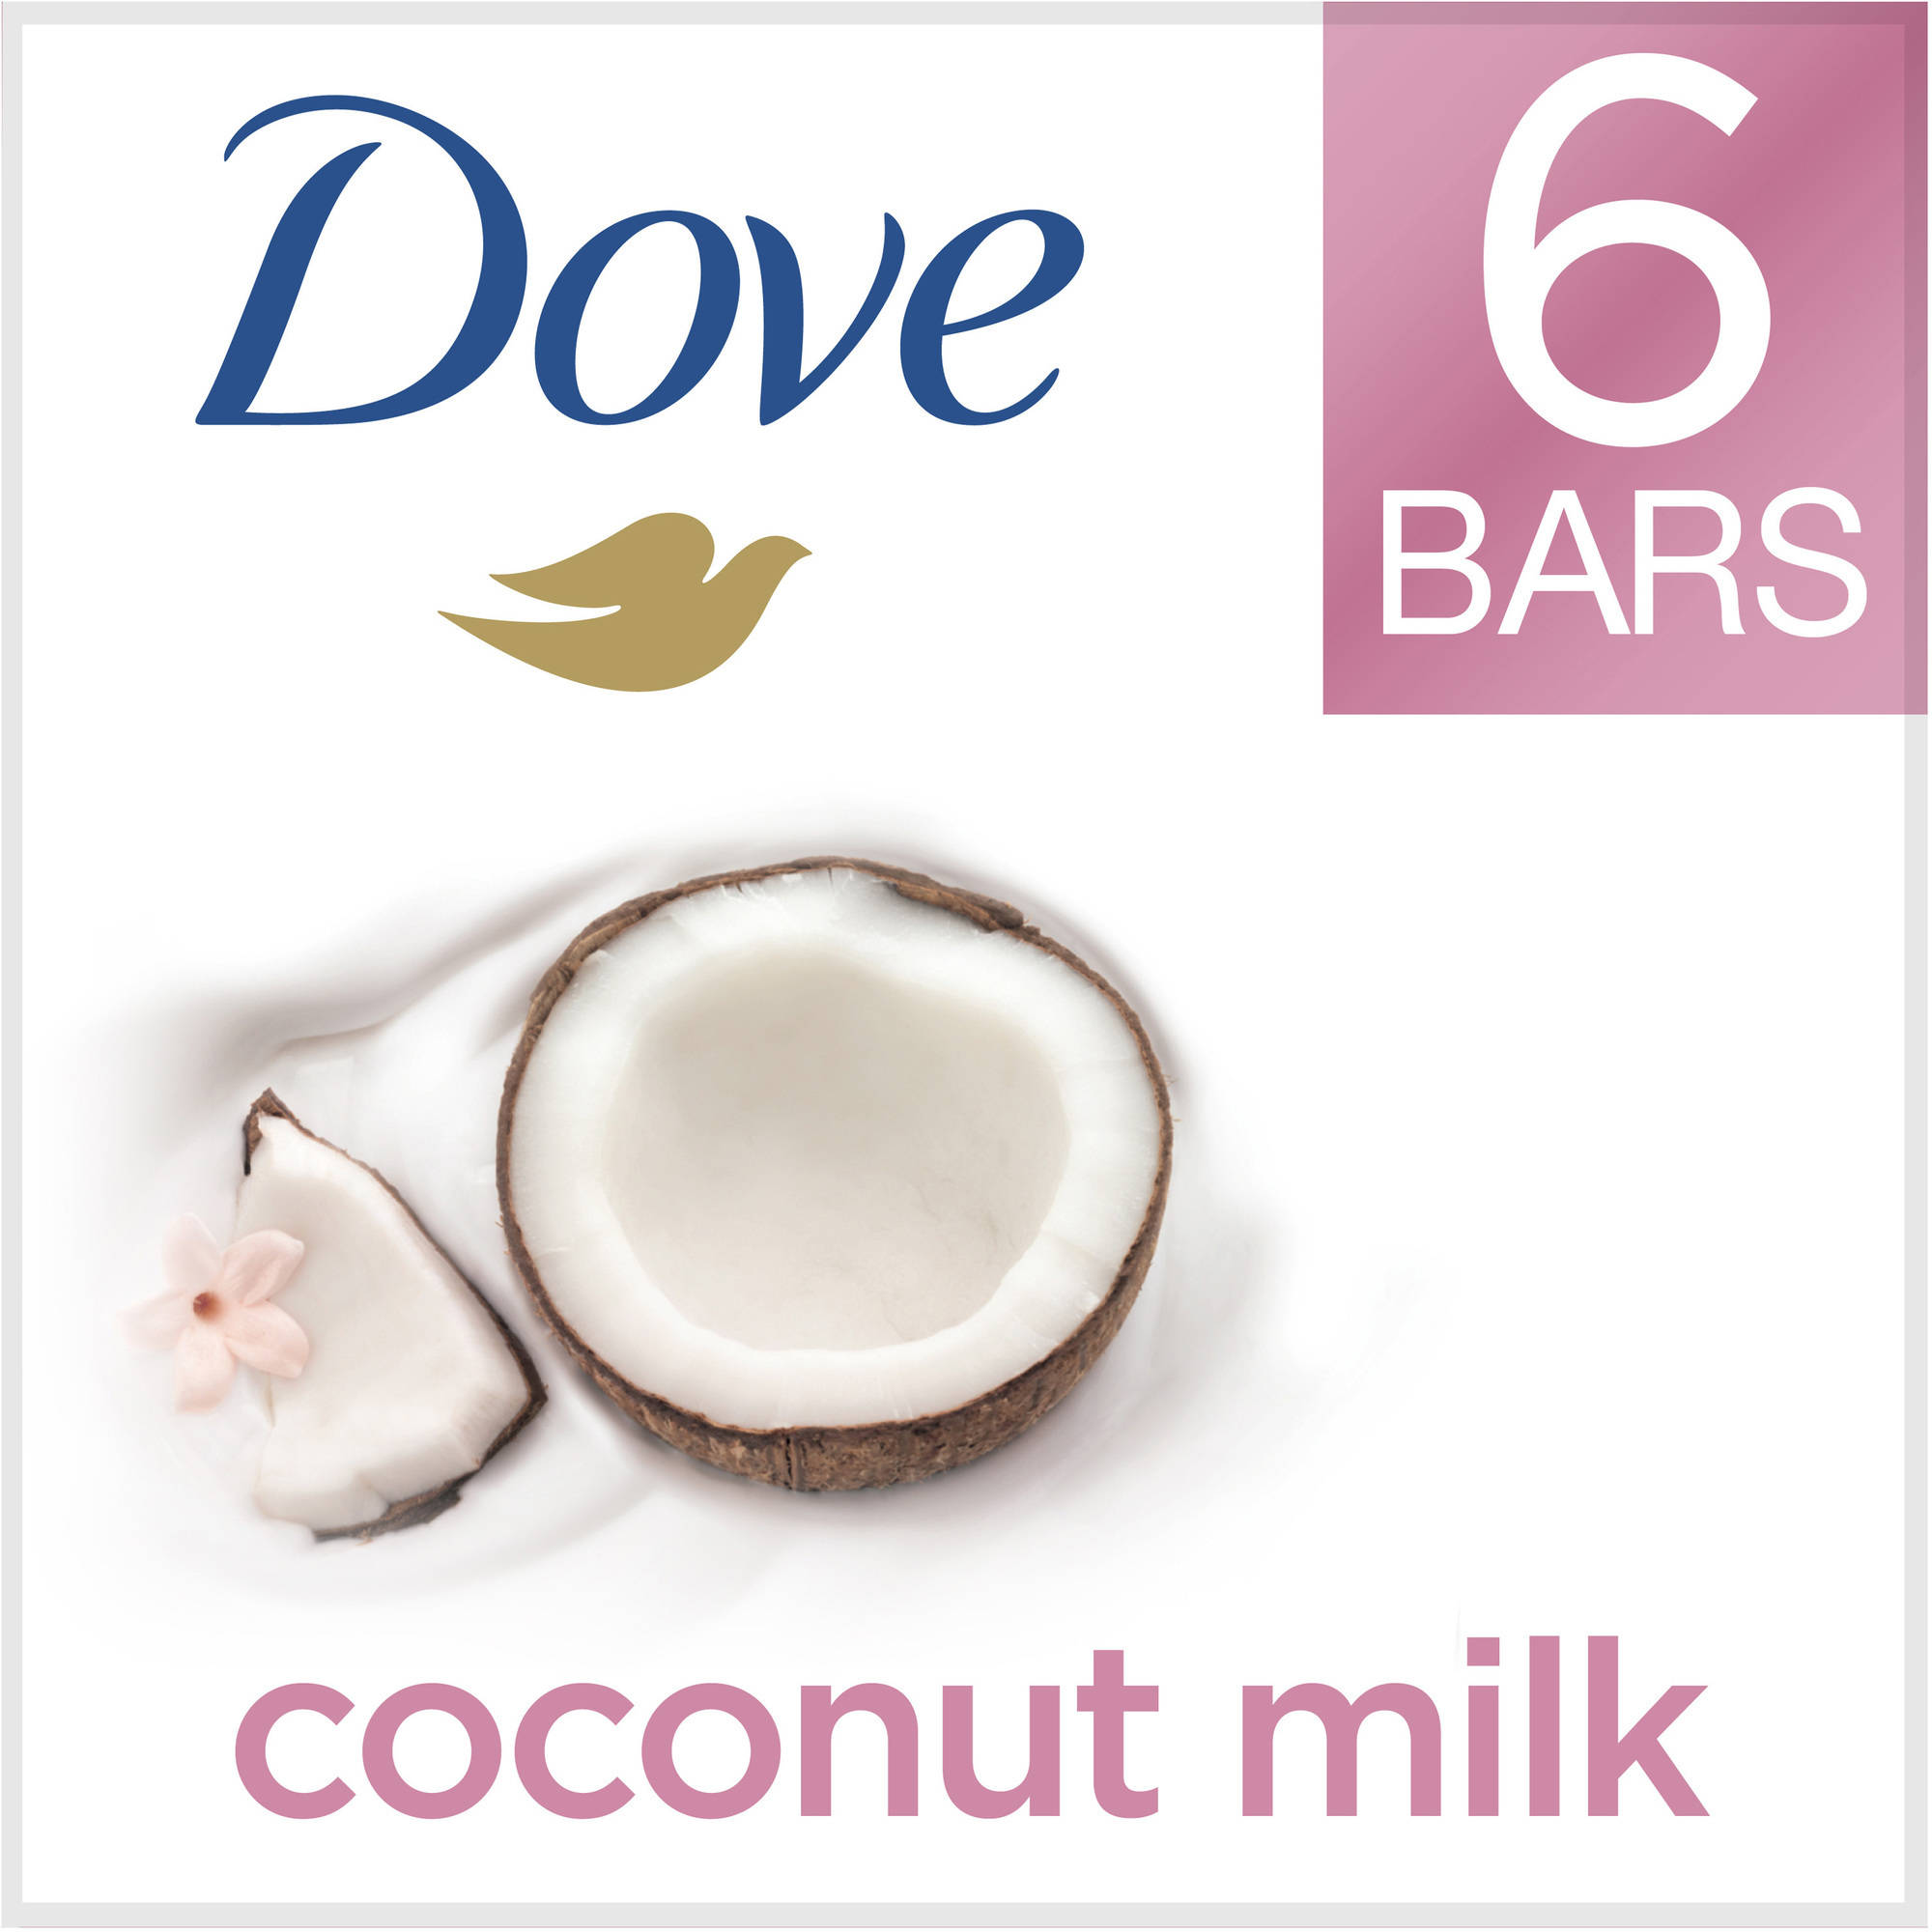 Dove Purely Pampering Coconut Milk Beauty Bar, 4 oz, 6 Bar